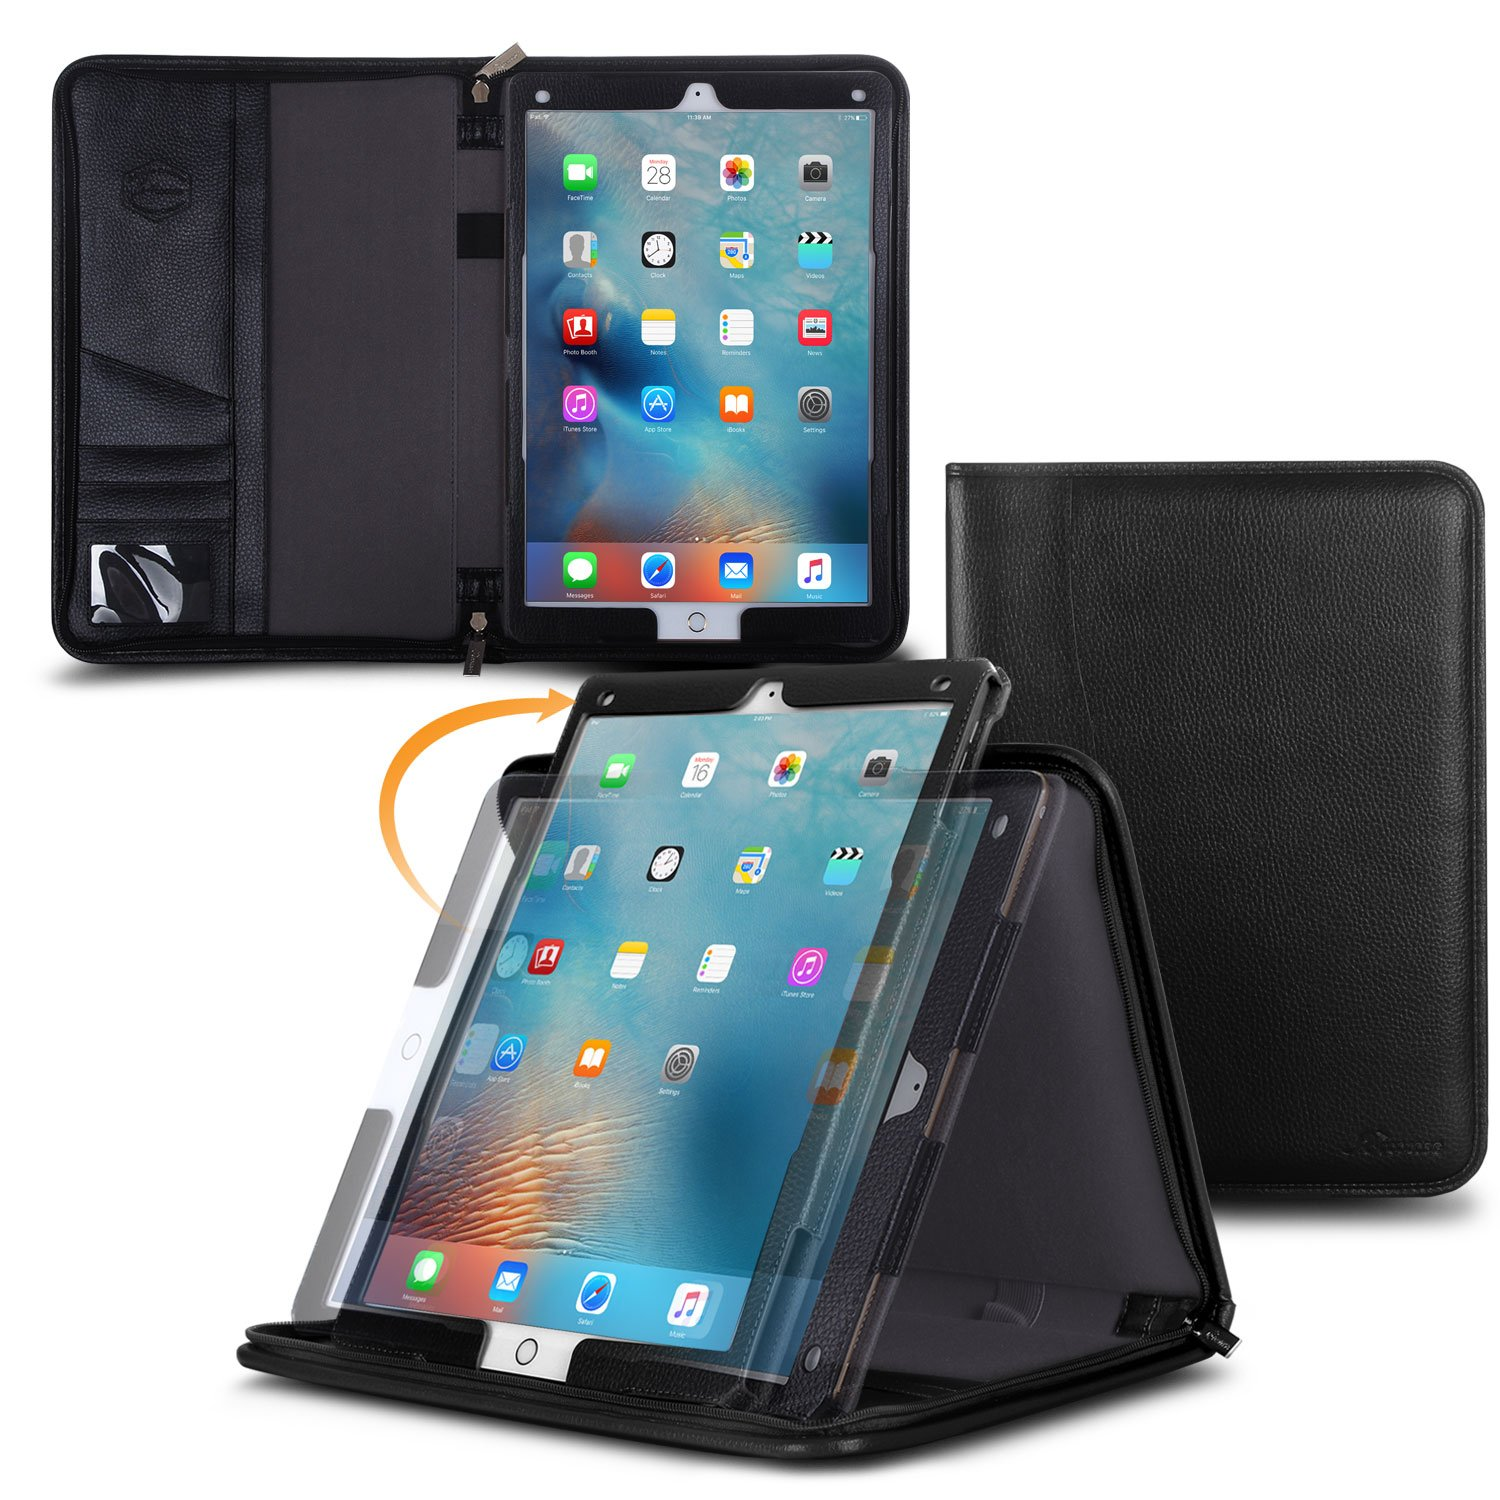 Amazon.com: Apple iPad PRO 9.7 Case Cover with Pencil Holder and ...